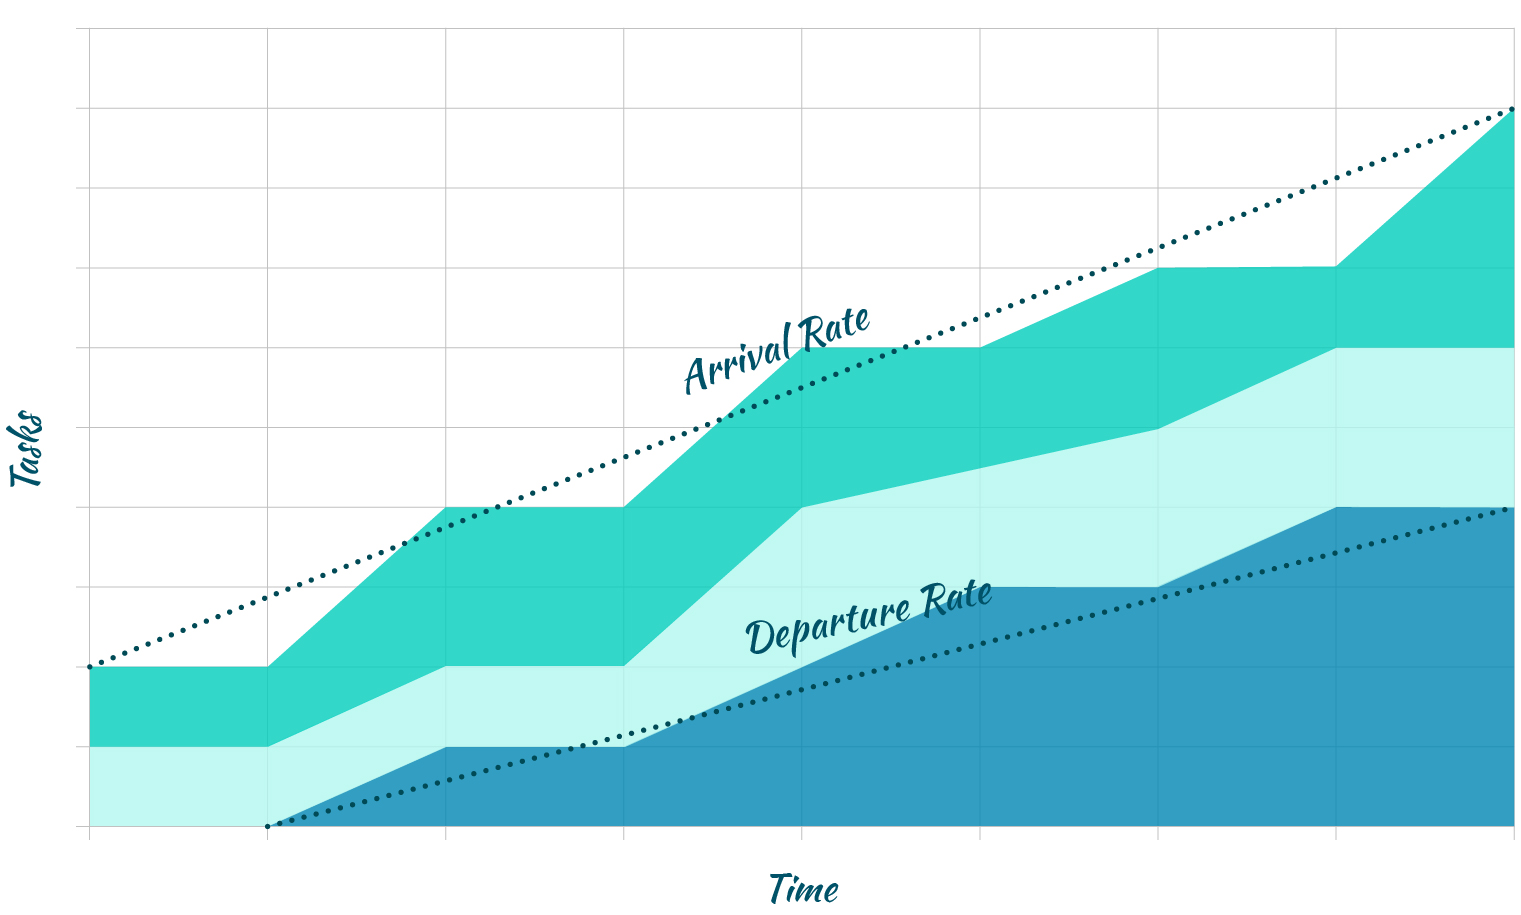 Workflow efficiency - arrival rate and departure rate